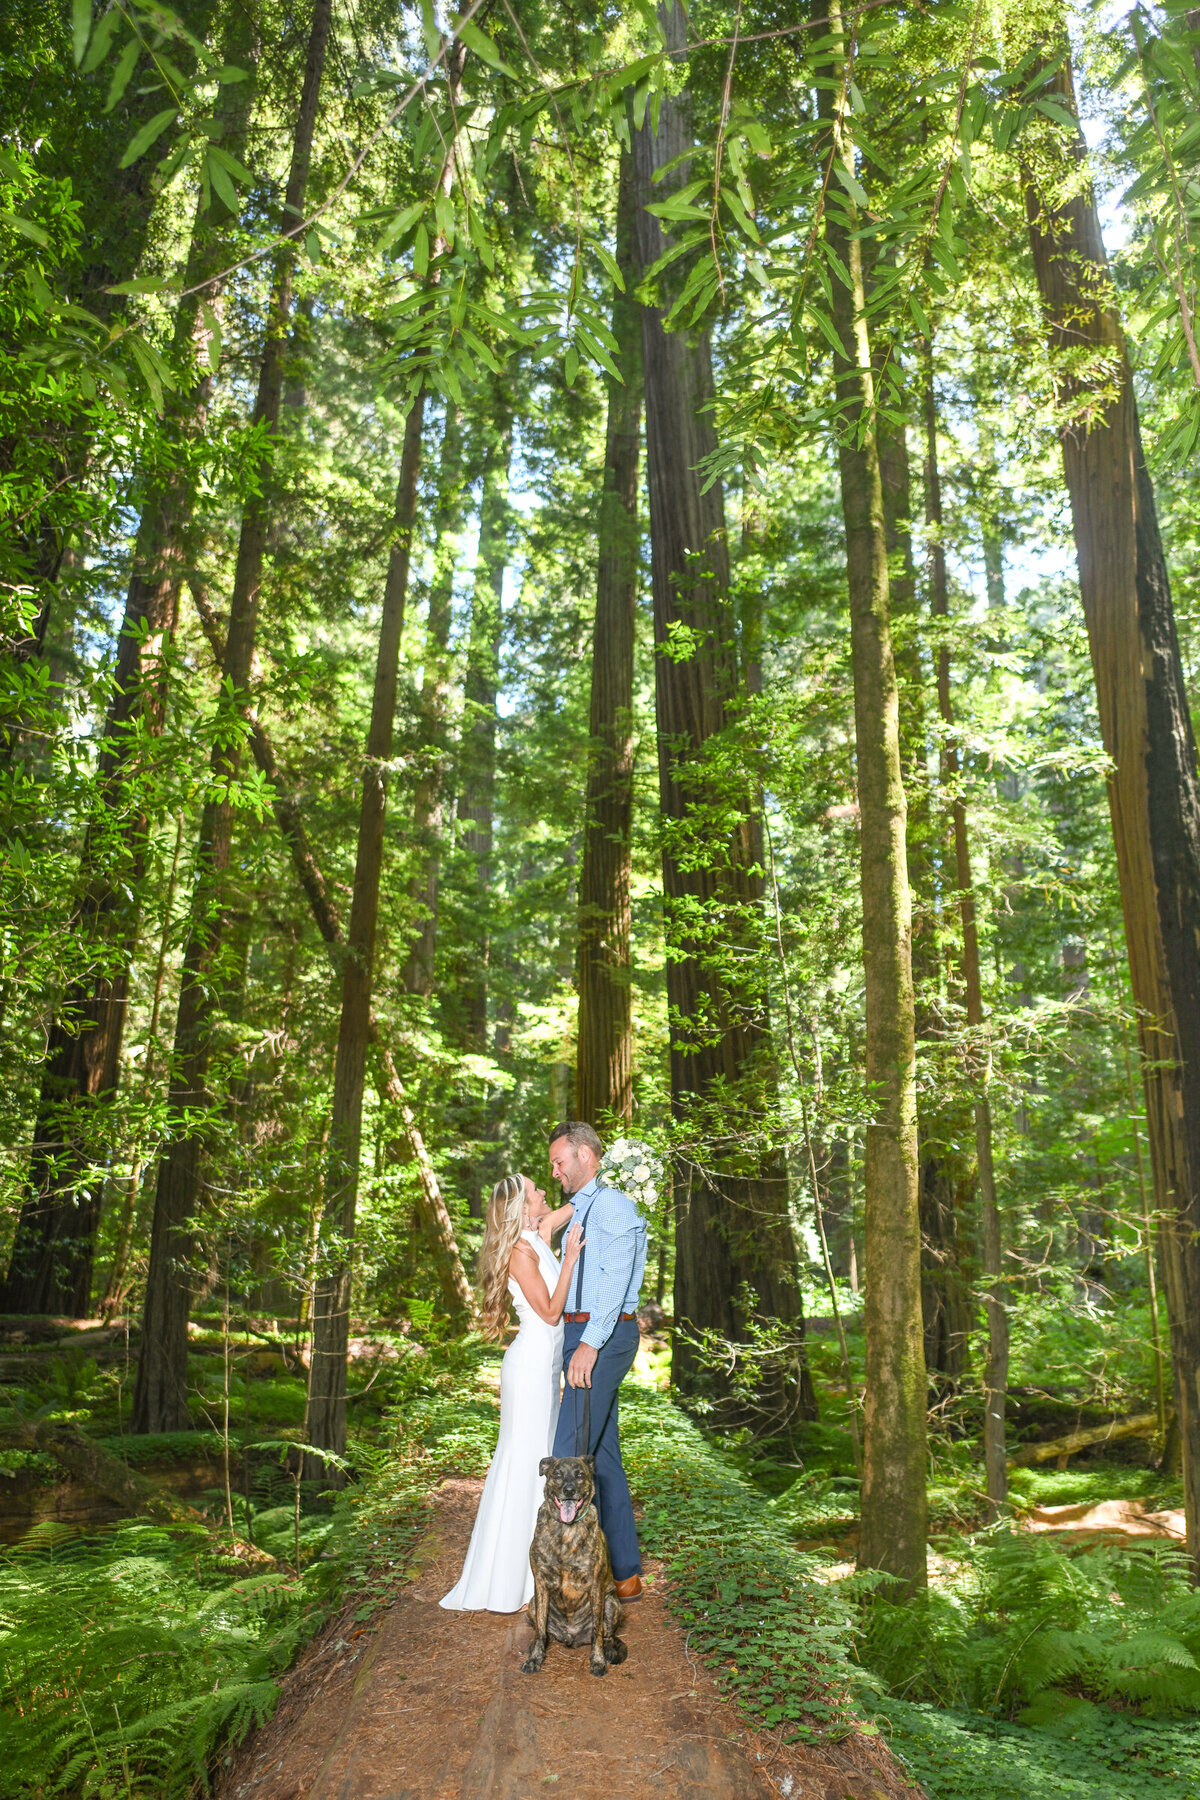 Humboldt-County-Elopement-Photographer-Redwoods-Avenue-of-the-Giants-Humboldt-Redwoods-Redwood-National-Park-Parky's-Pics-Coastal-Redwoods-Elopements-28